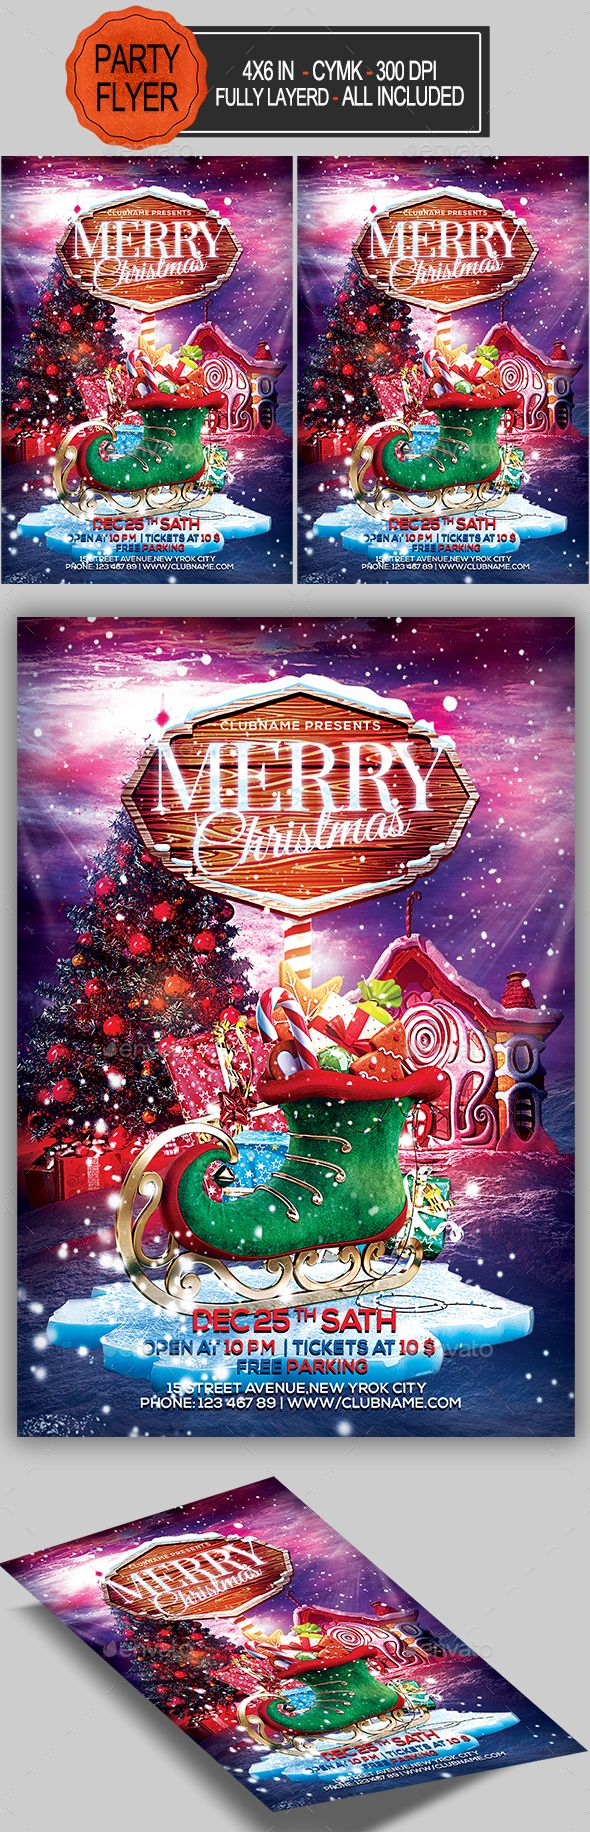 Merry Christmas Flyer — Photoshop PSD #christmas night • Available here ➝ https://graphicriver.net/item/merry-christmas-flyer/20827059?ref=pxcr